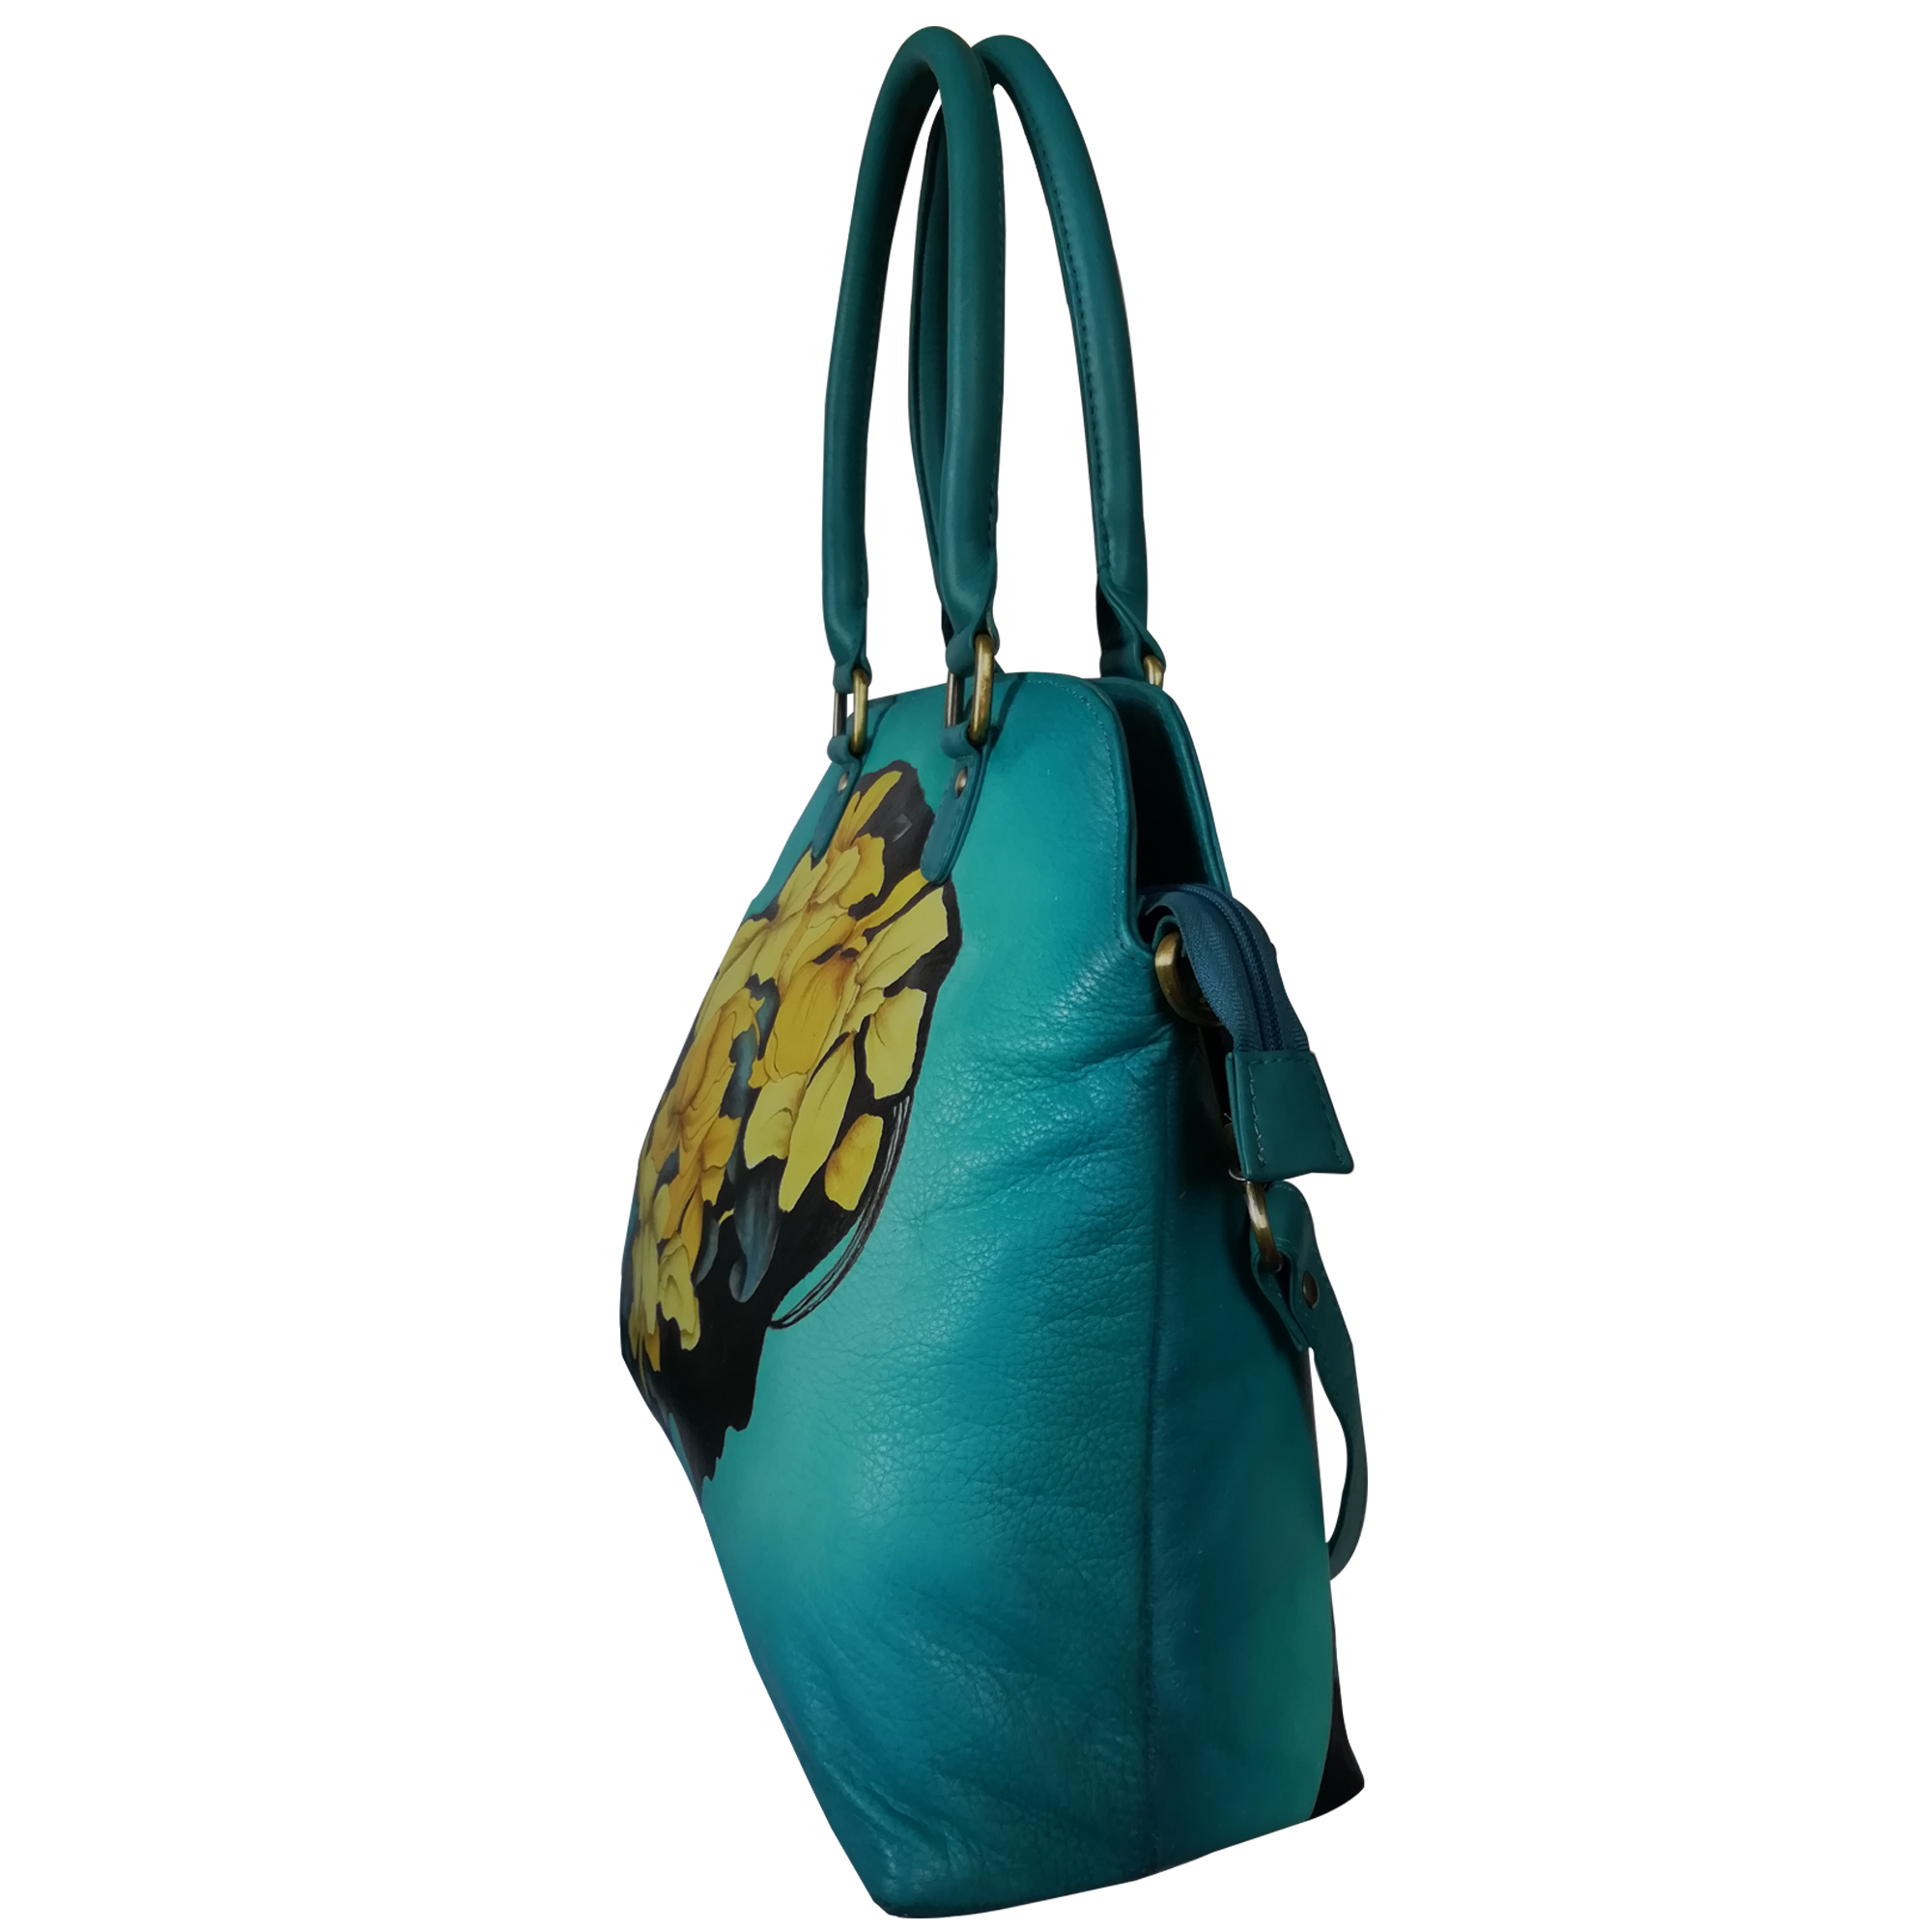 New Hand Painted Leather Shoulder Handbag Design Leaves Teal